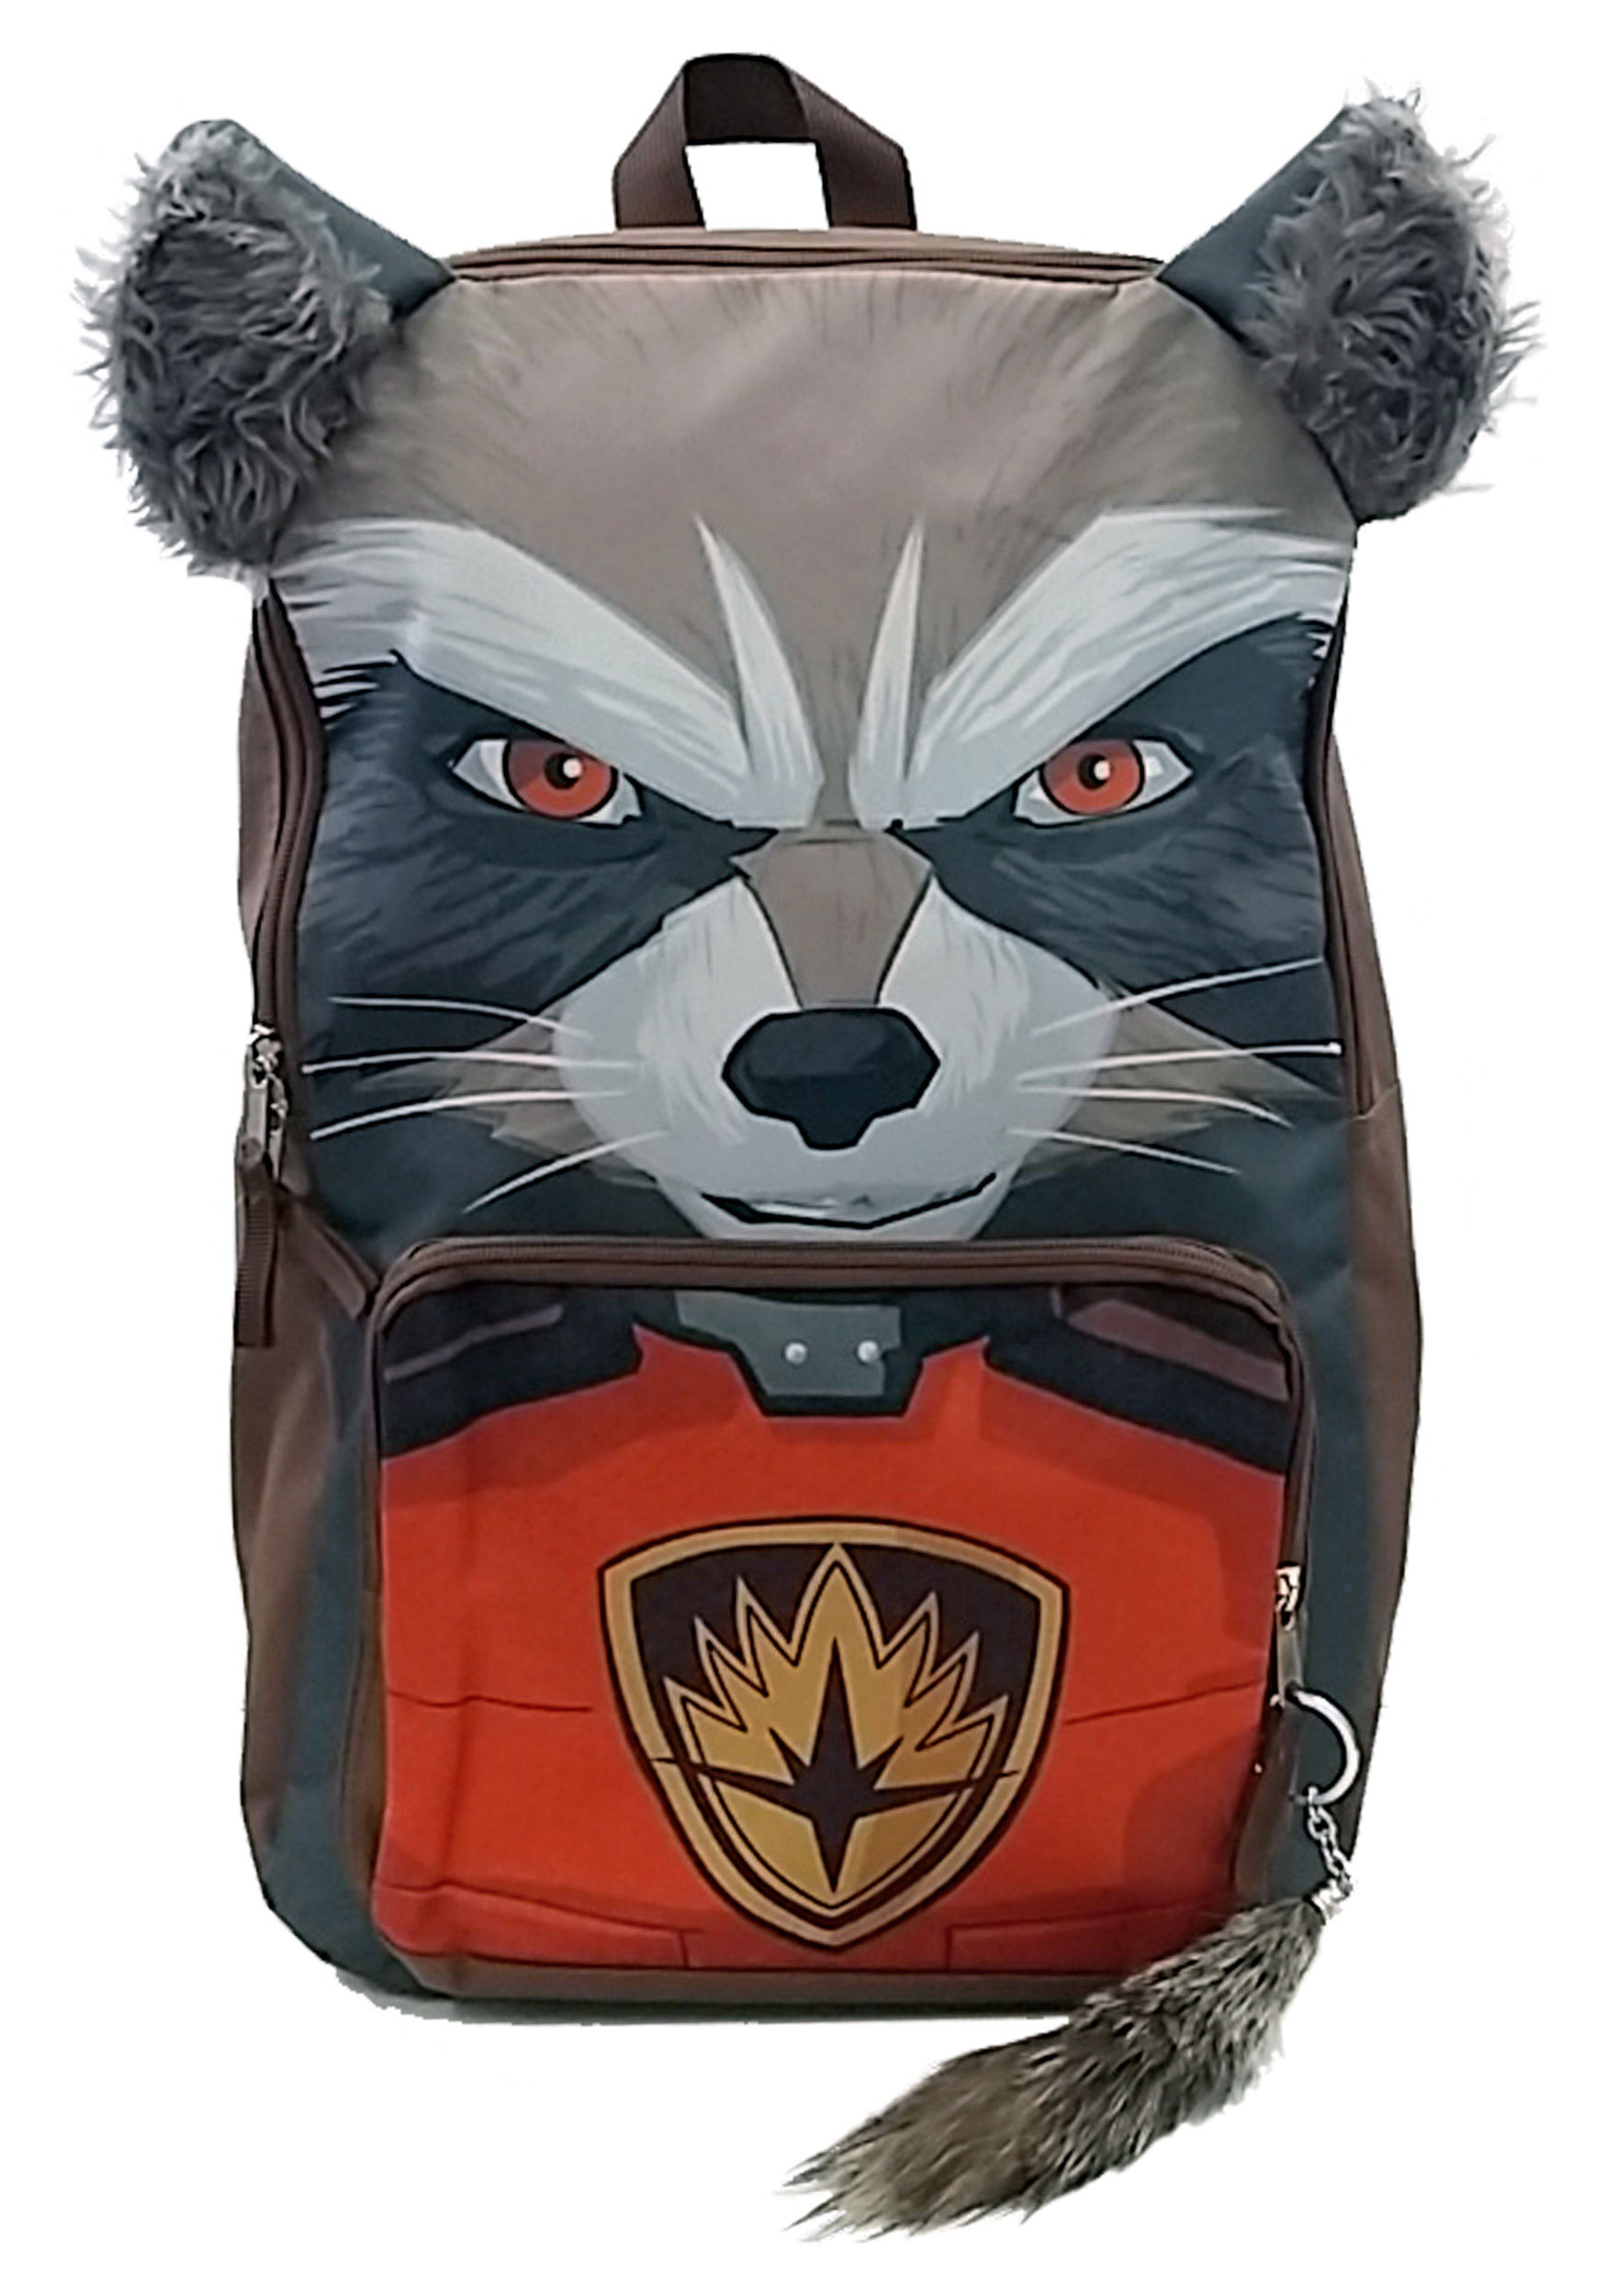 Marvels_Guardians_of_the_Galaxy_Rocket_Raccoon_Backpack